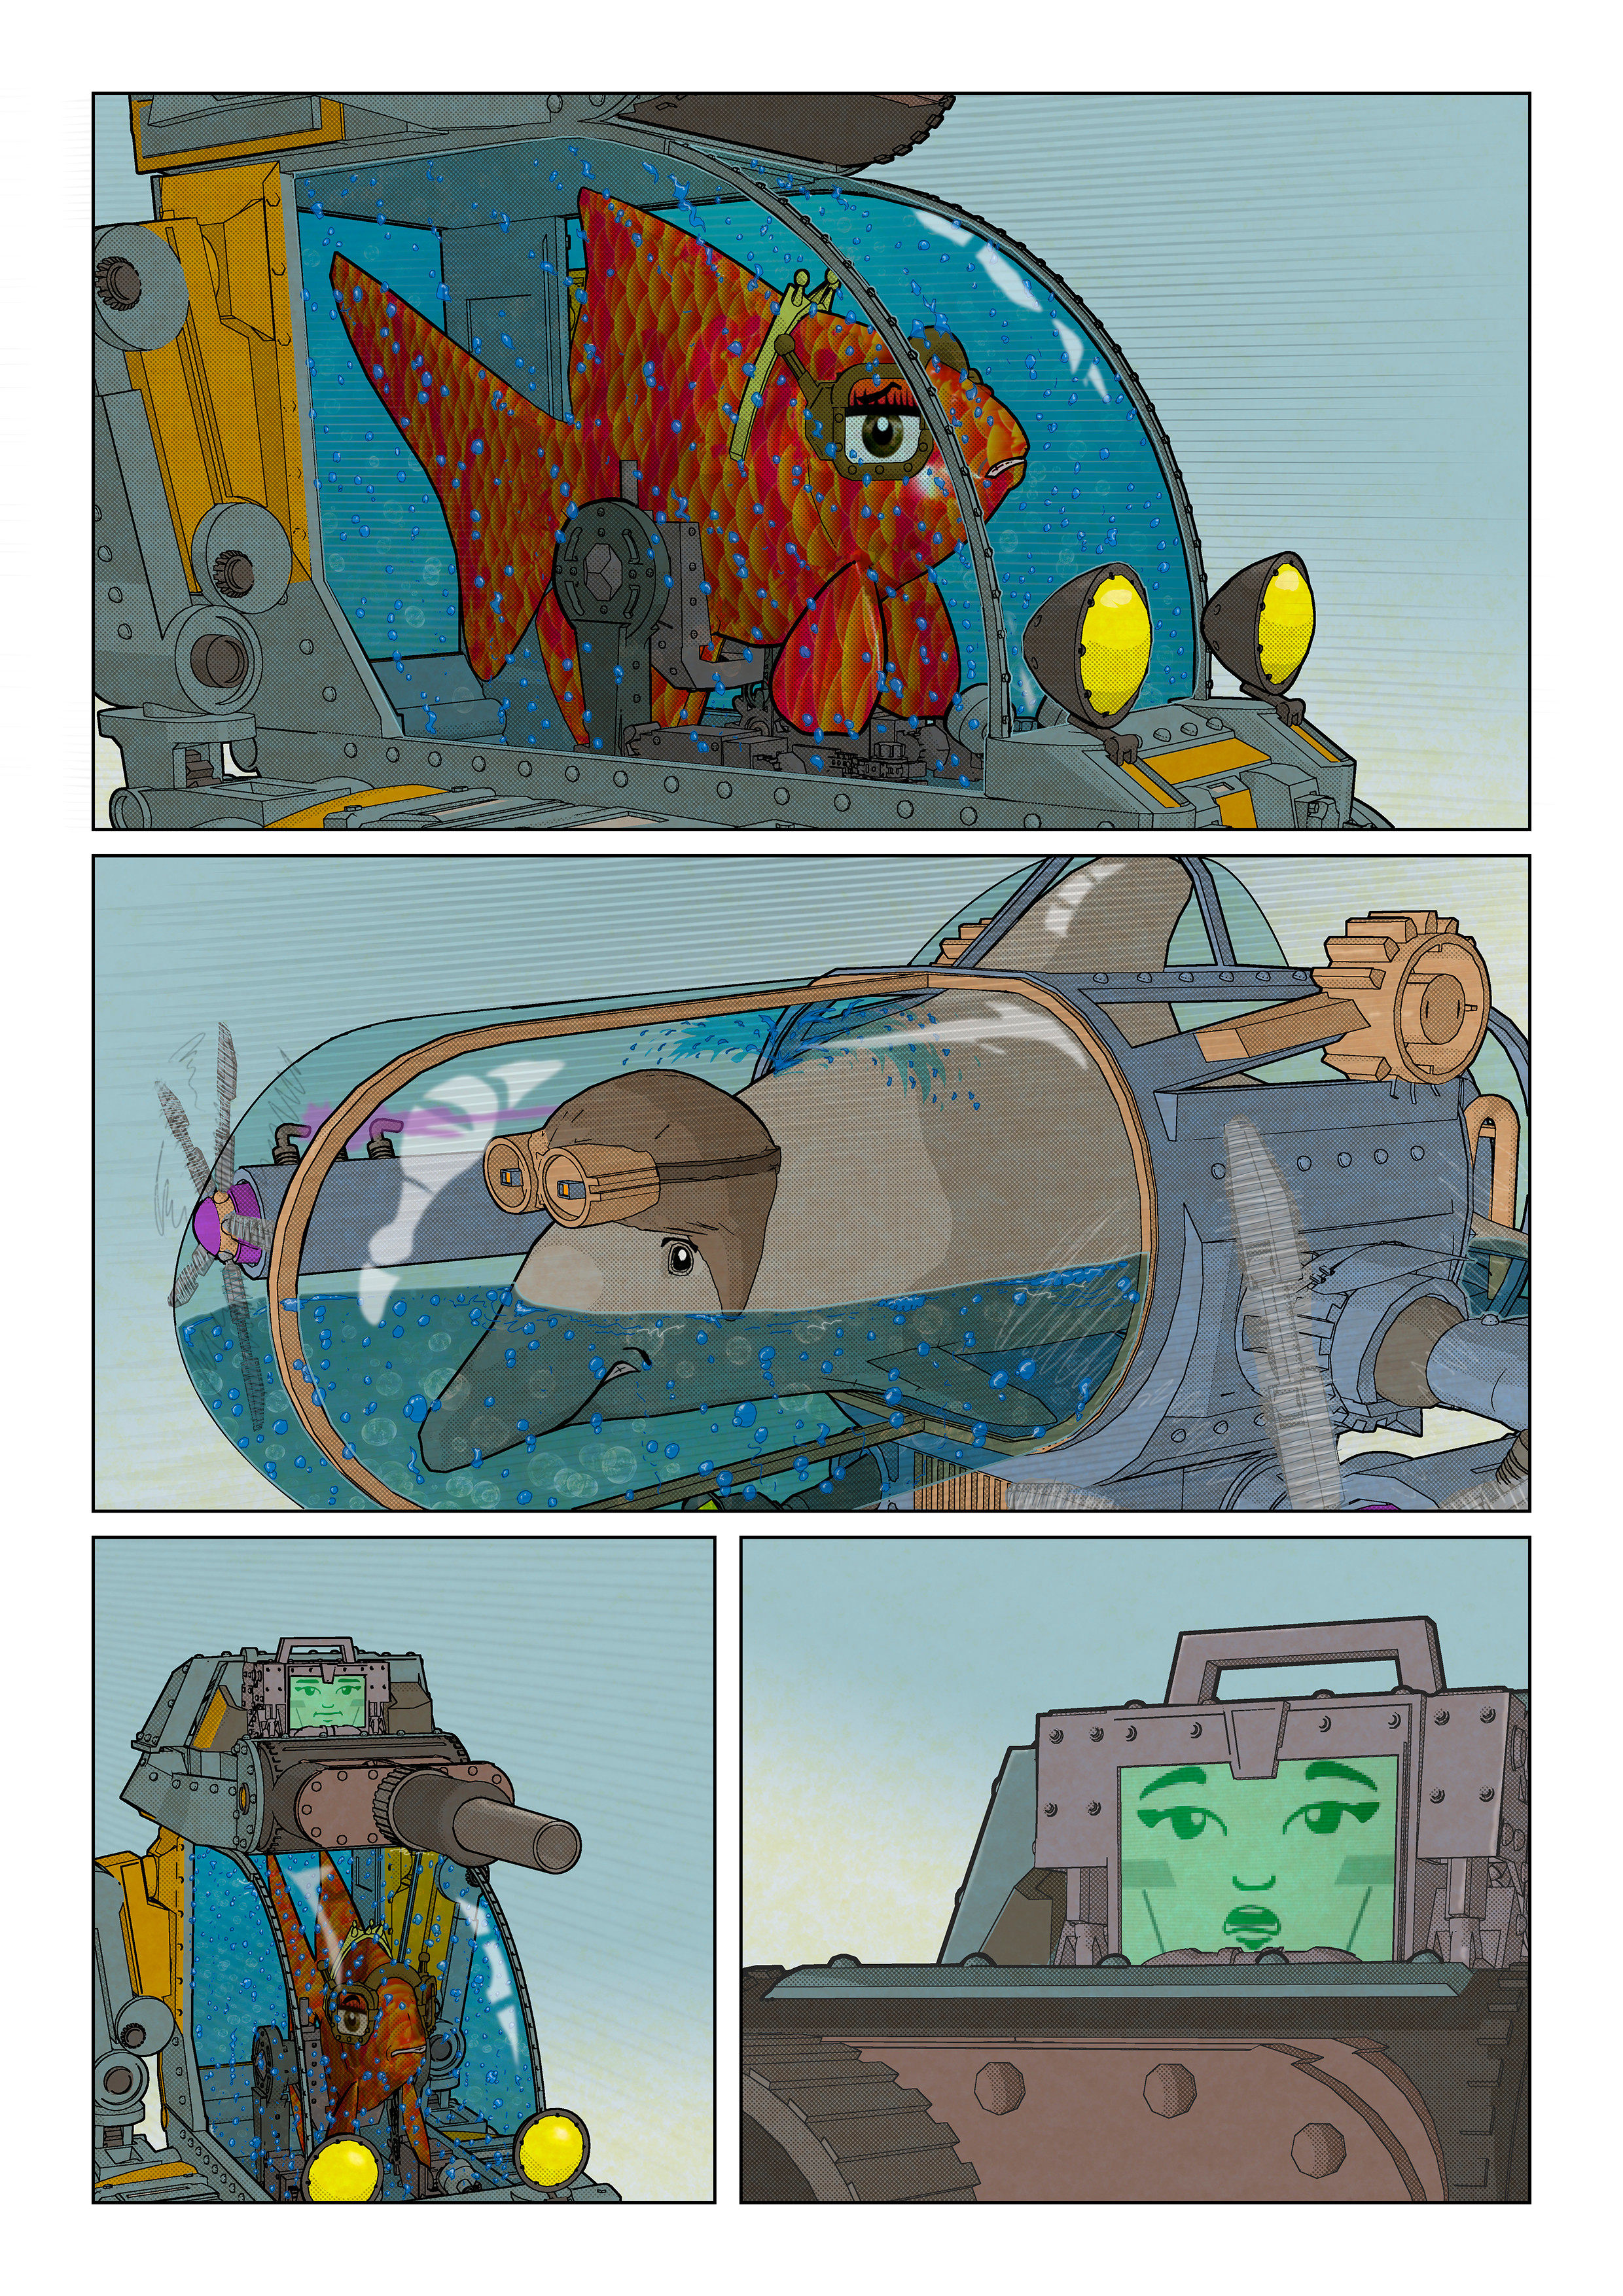 Page 3 from the FishTank & Dolphinarium comic book.